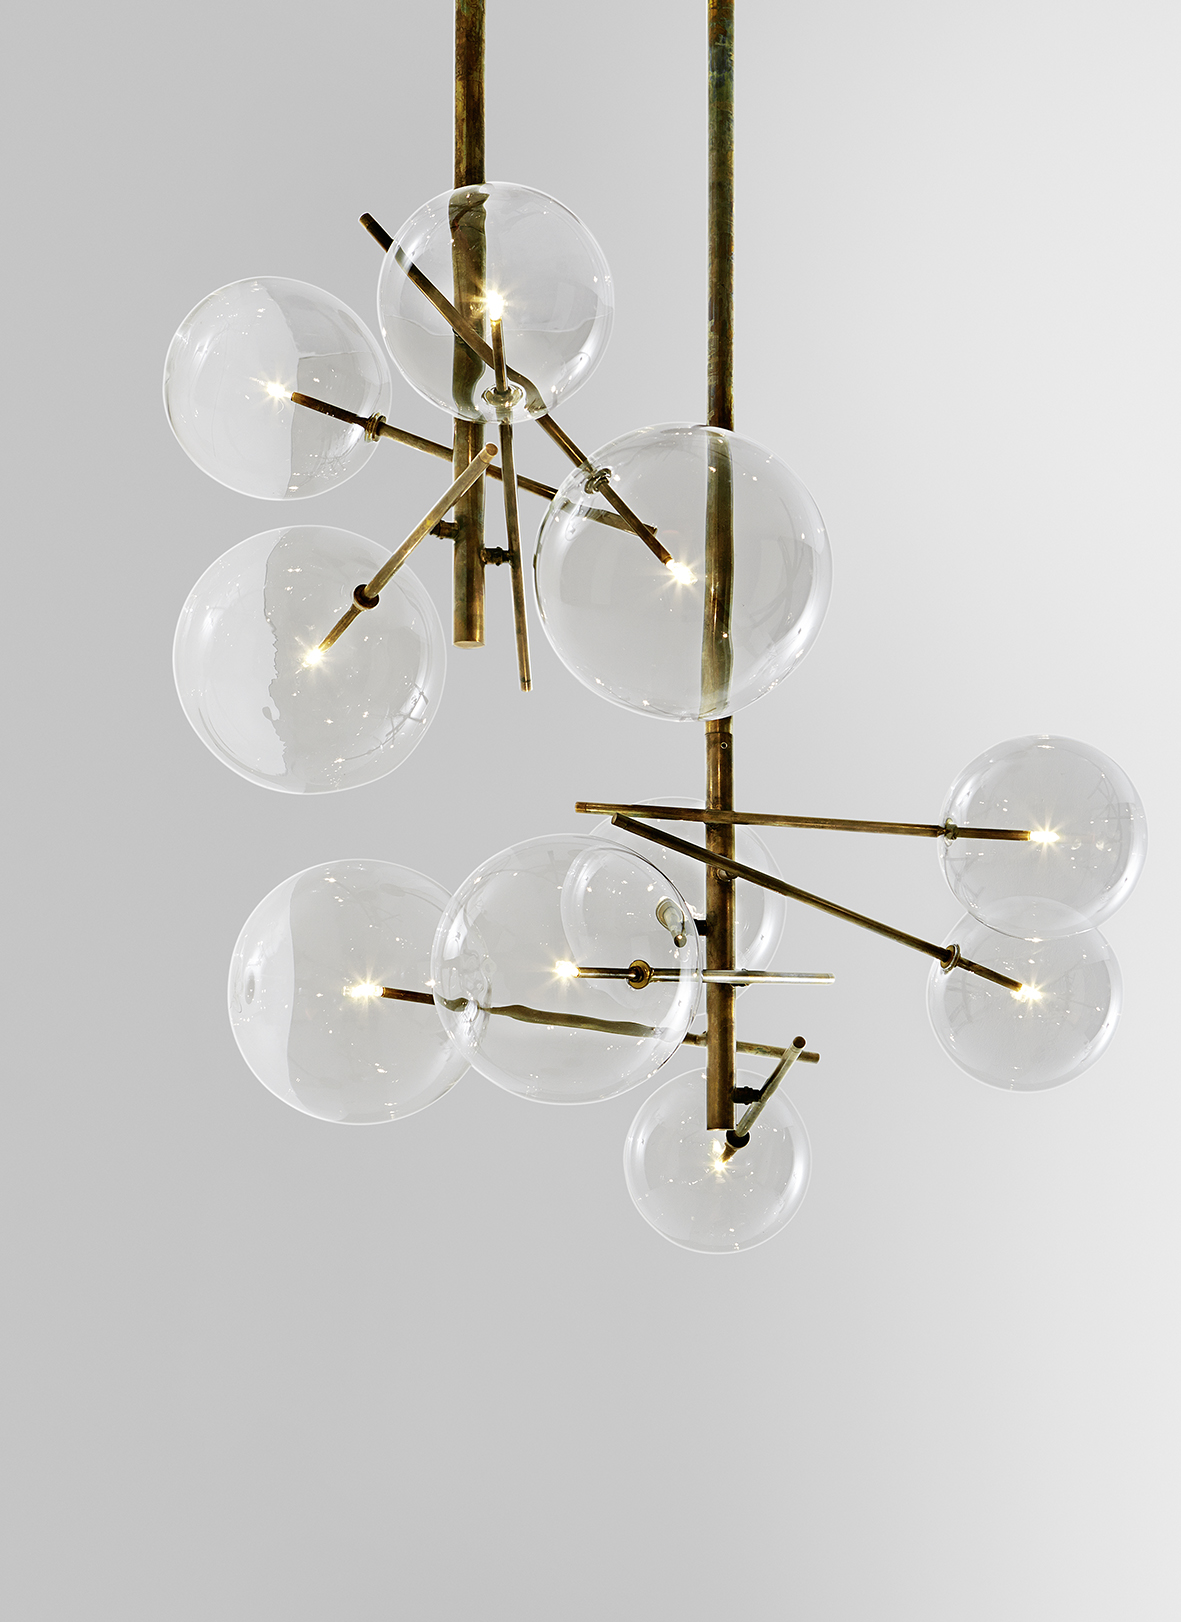 The 'Bolle' light in copper brass and glass by Gallotti & Radice.